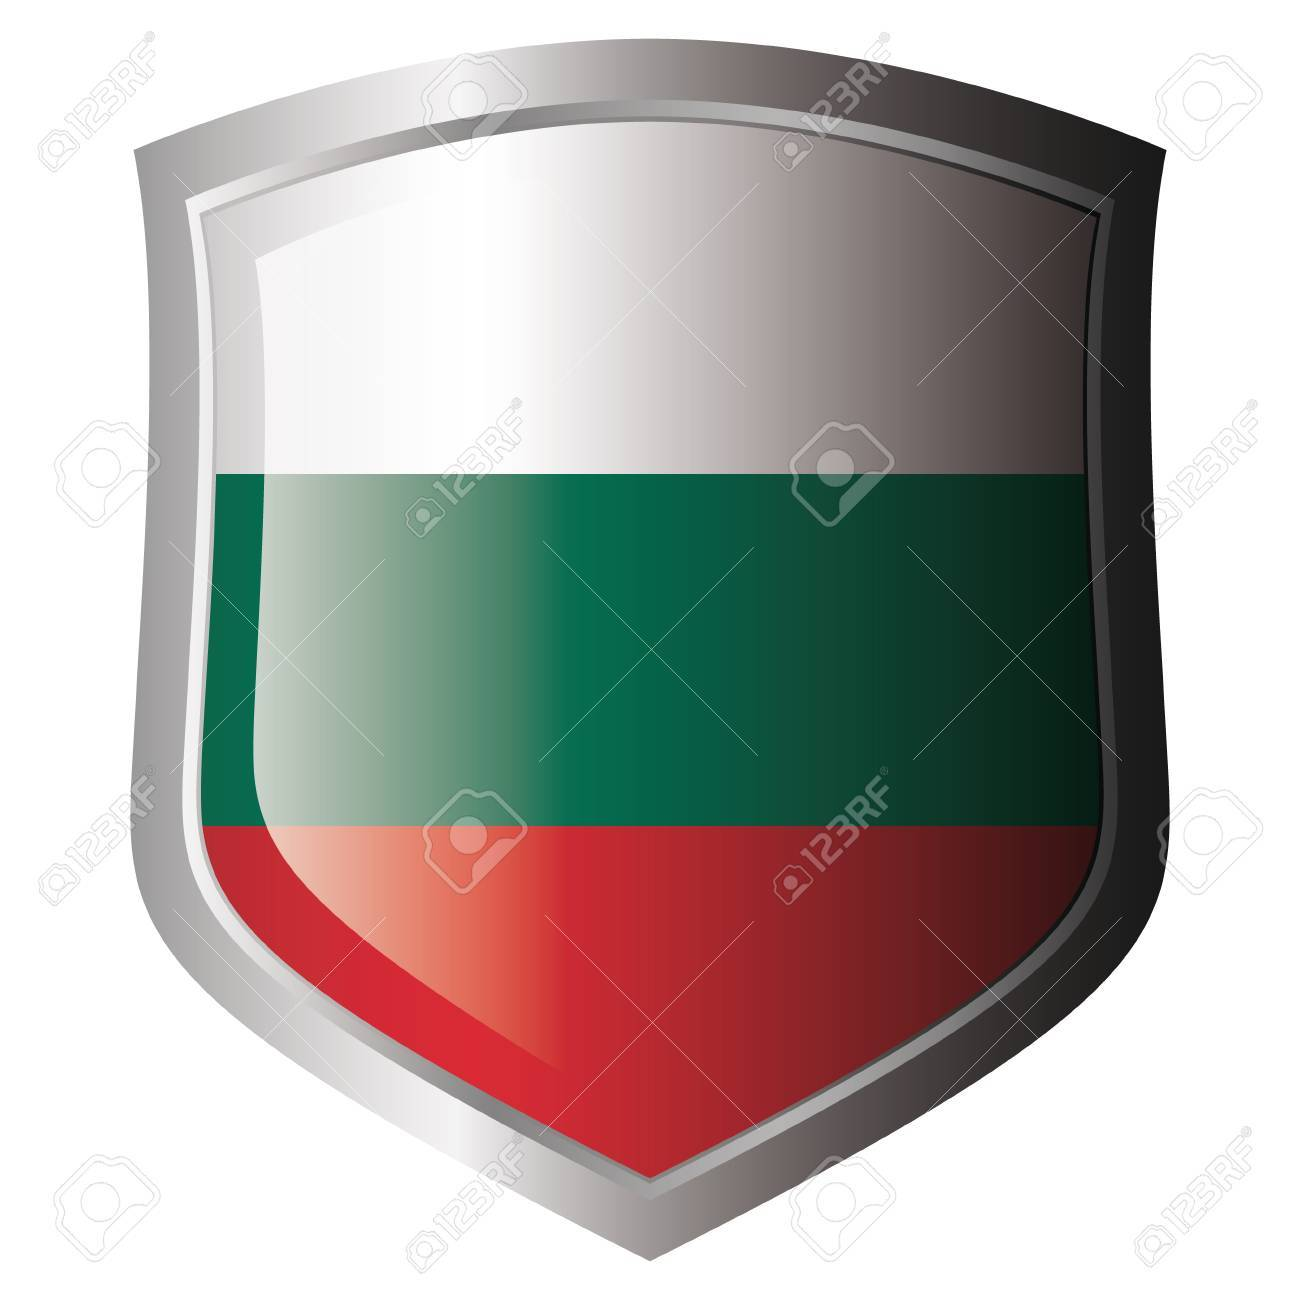 bulgaria flag on metal shiny shield. Collection of flags on shield against white background. Isolated object. Stock Vector - 5871976